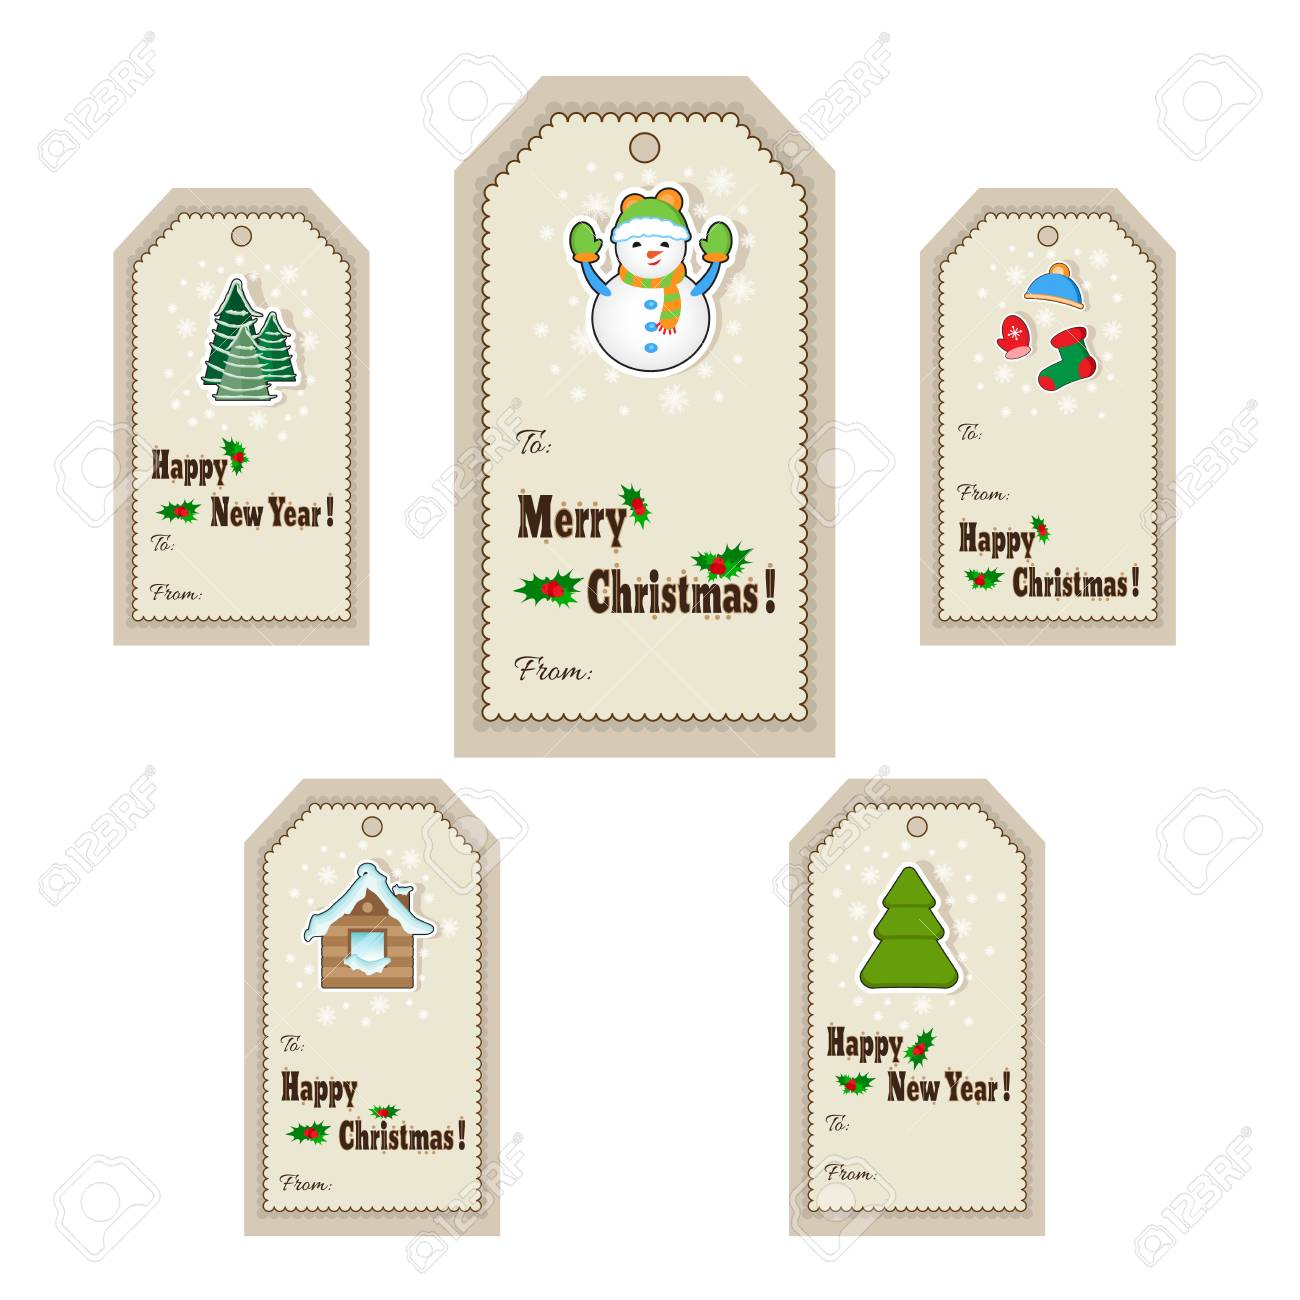 Christmas Gift Tag Template.Christmas Gift Tags And Labels Vector Illustration Template